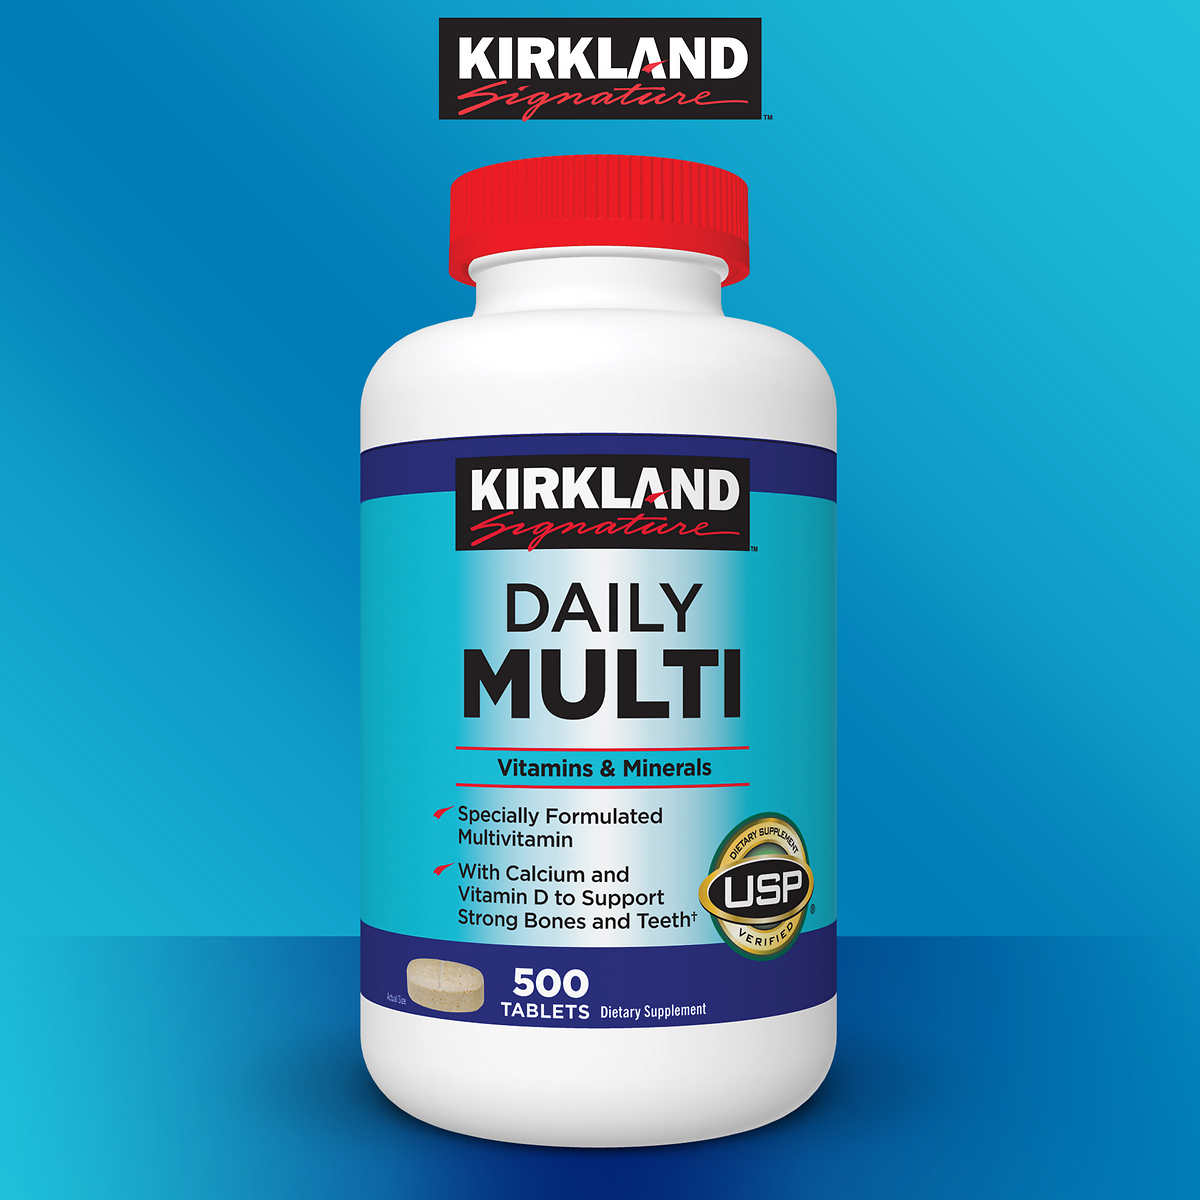 kirkland signature daily multi product from costco